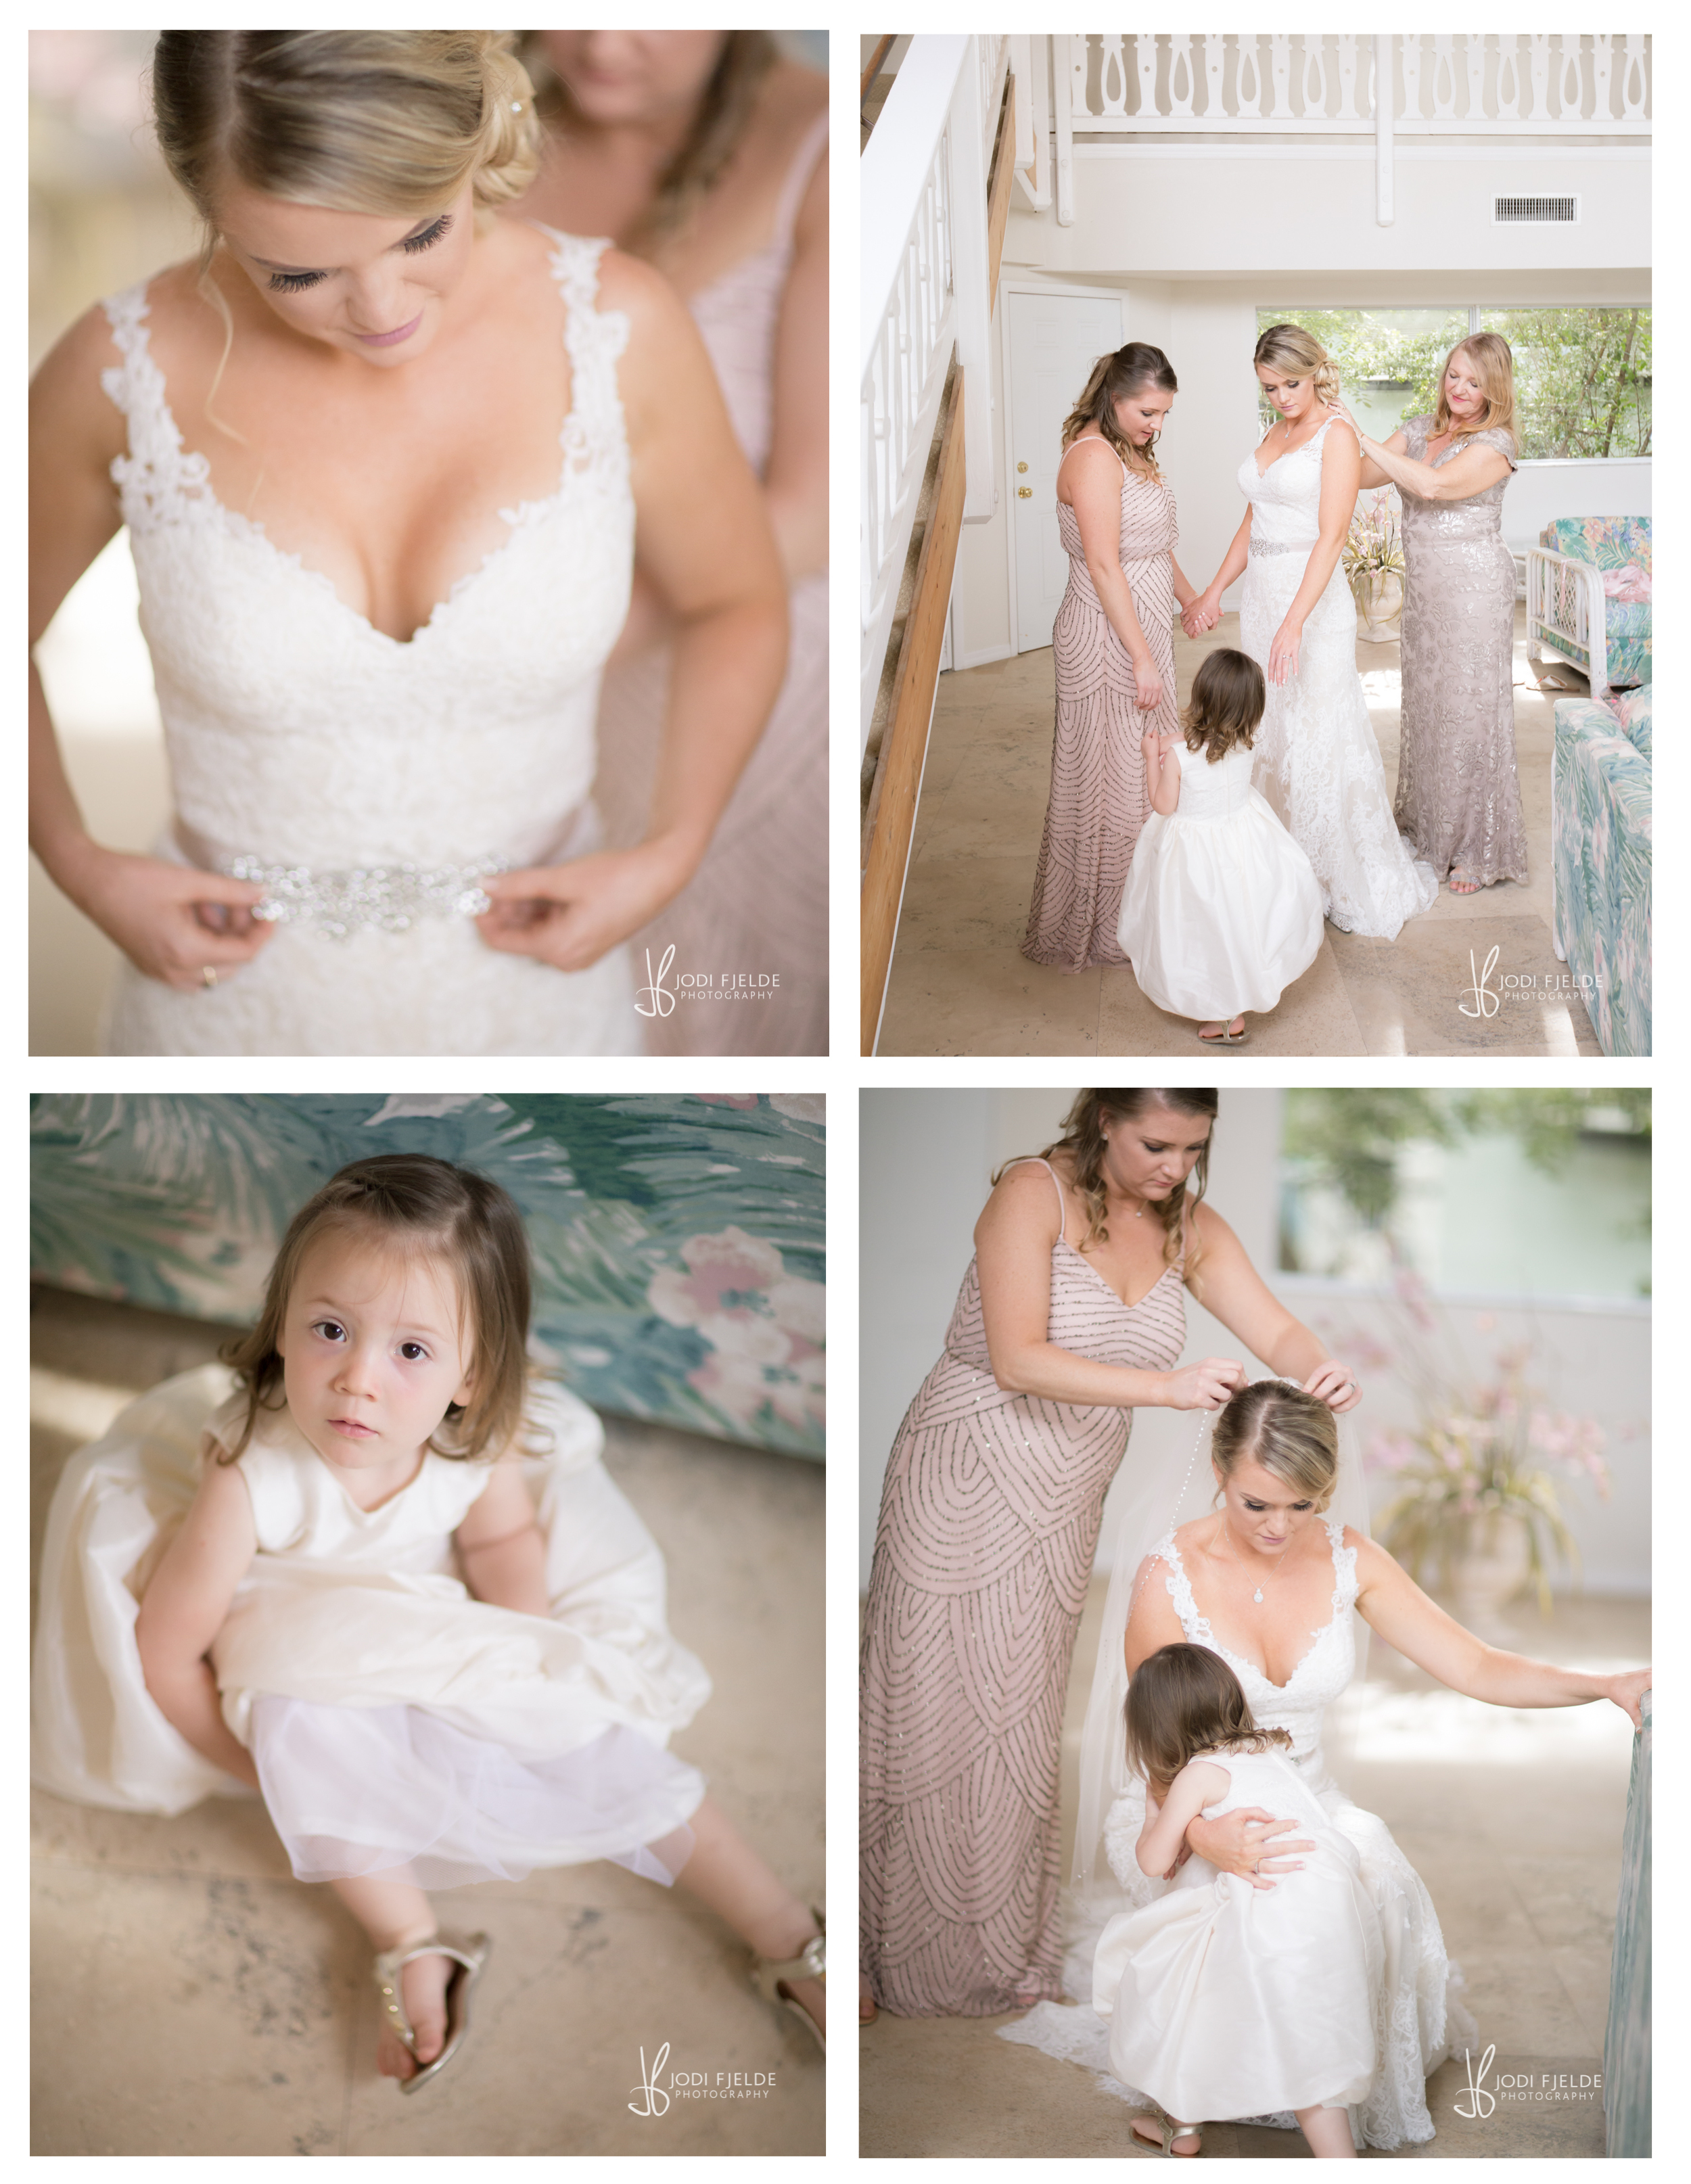 Cocconut_Cove_&_ Marina_ wedding_Kalie_and_Kurt 10.jpg